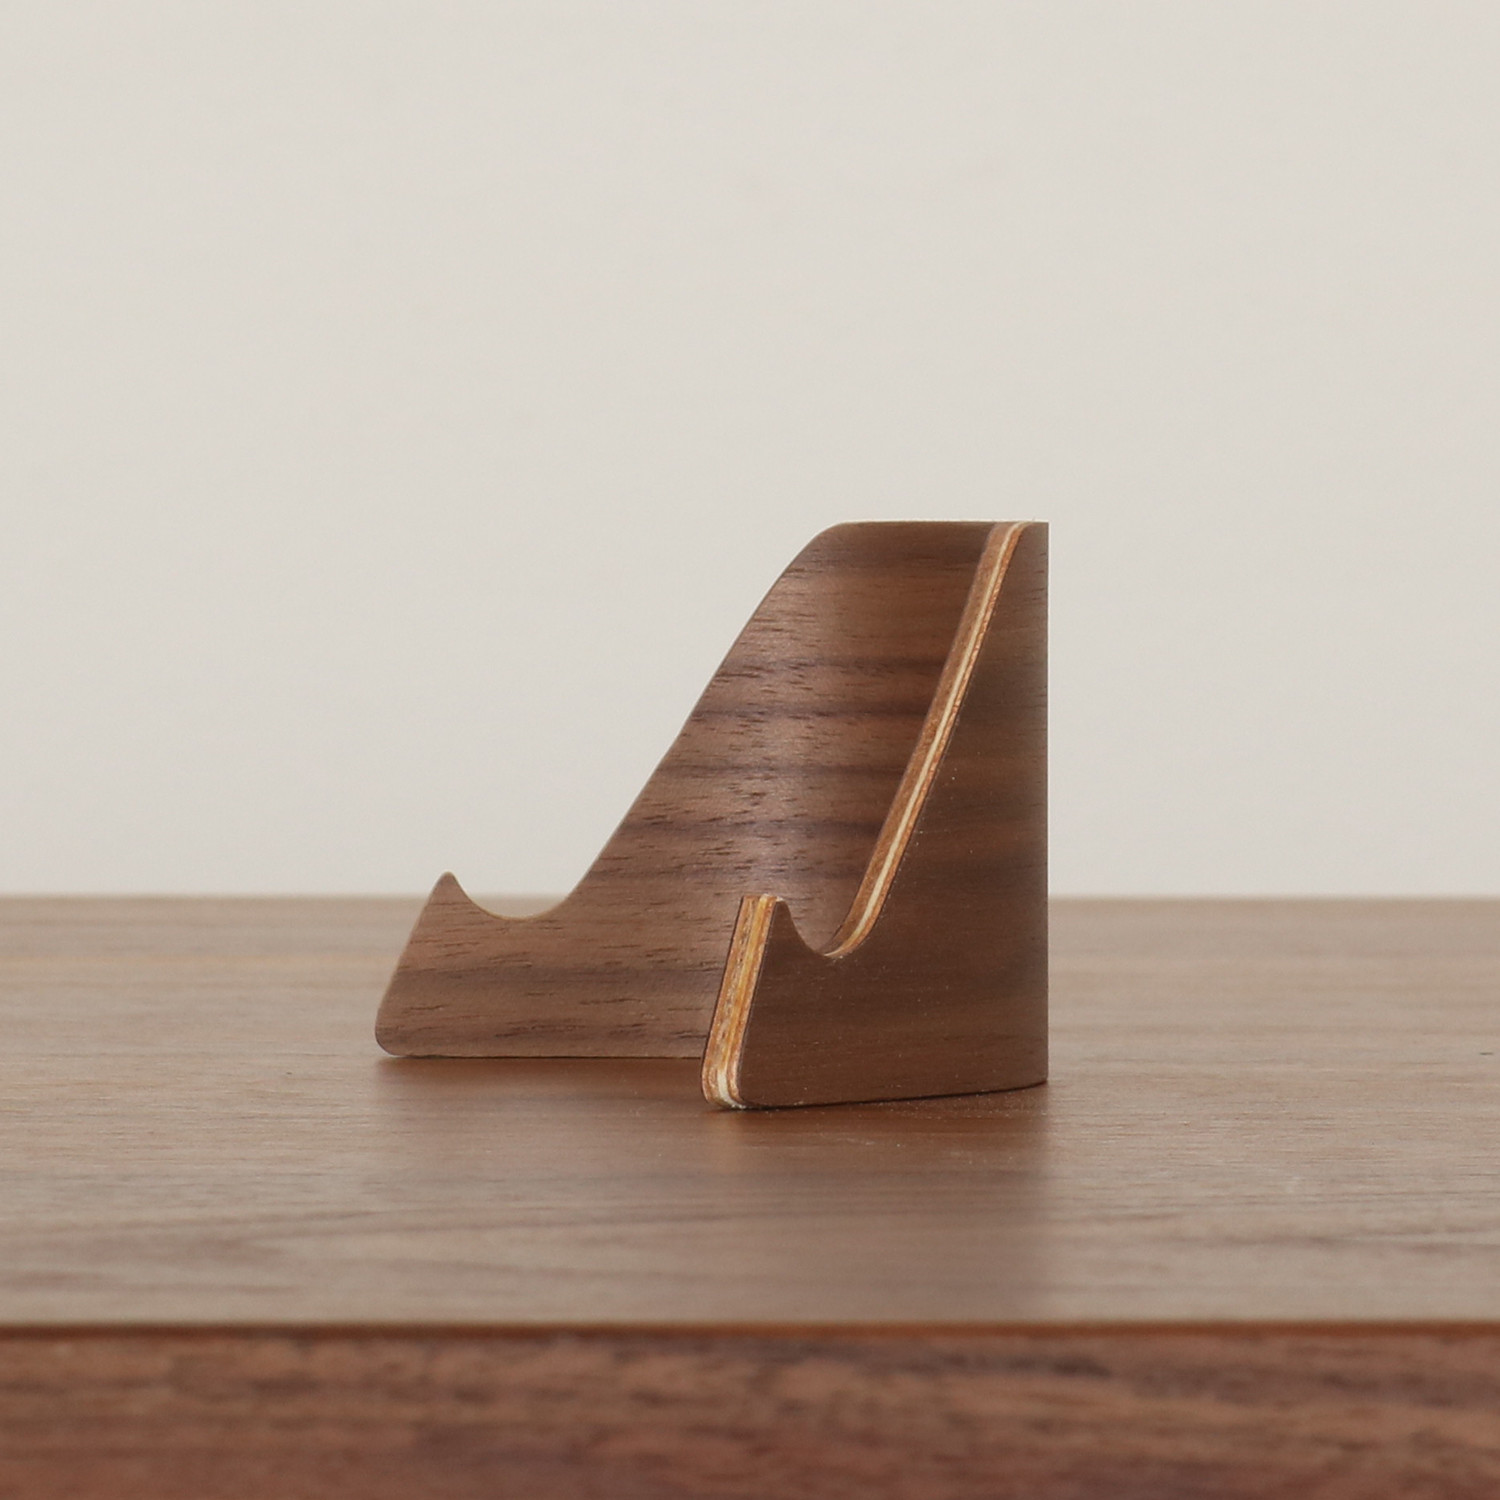 Plywood Business Card Holder + Phone Stand (walnut)